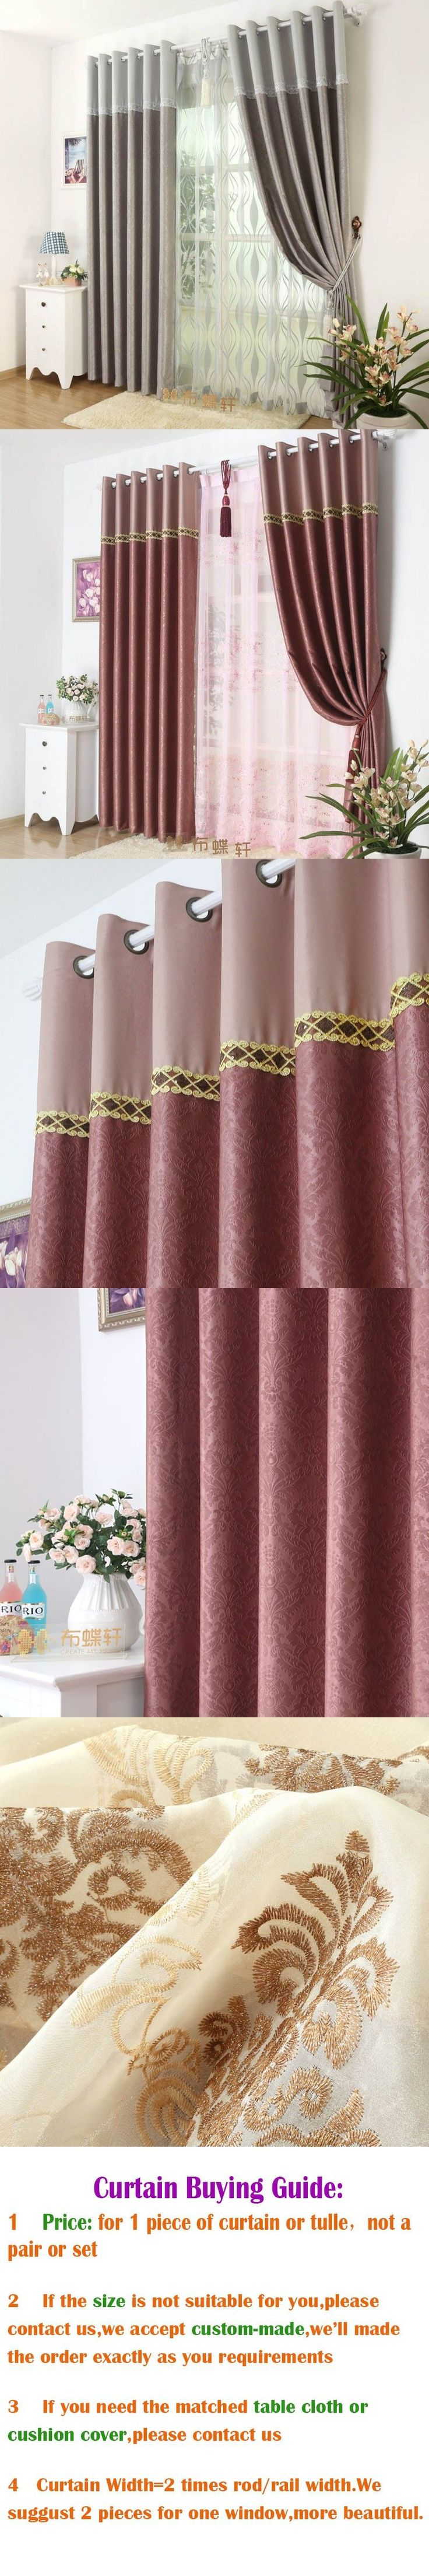 Full Blackout Curtain Fabrics For Bedroom Soundproof Home Curtains Elegant Drapes Luxury Suede Ready Made Blinds Thick Custom $24.8